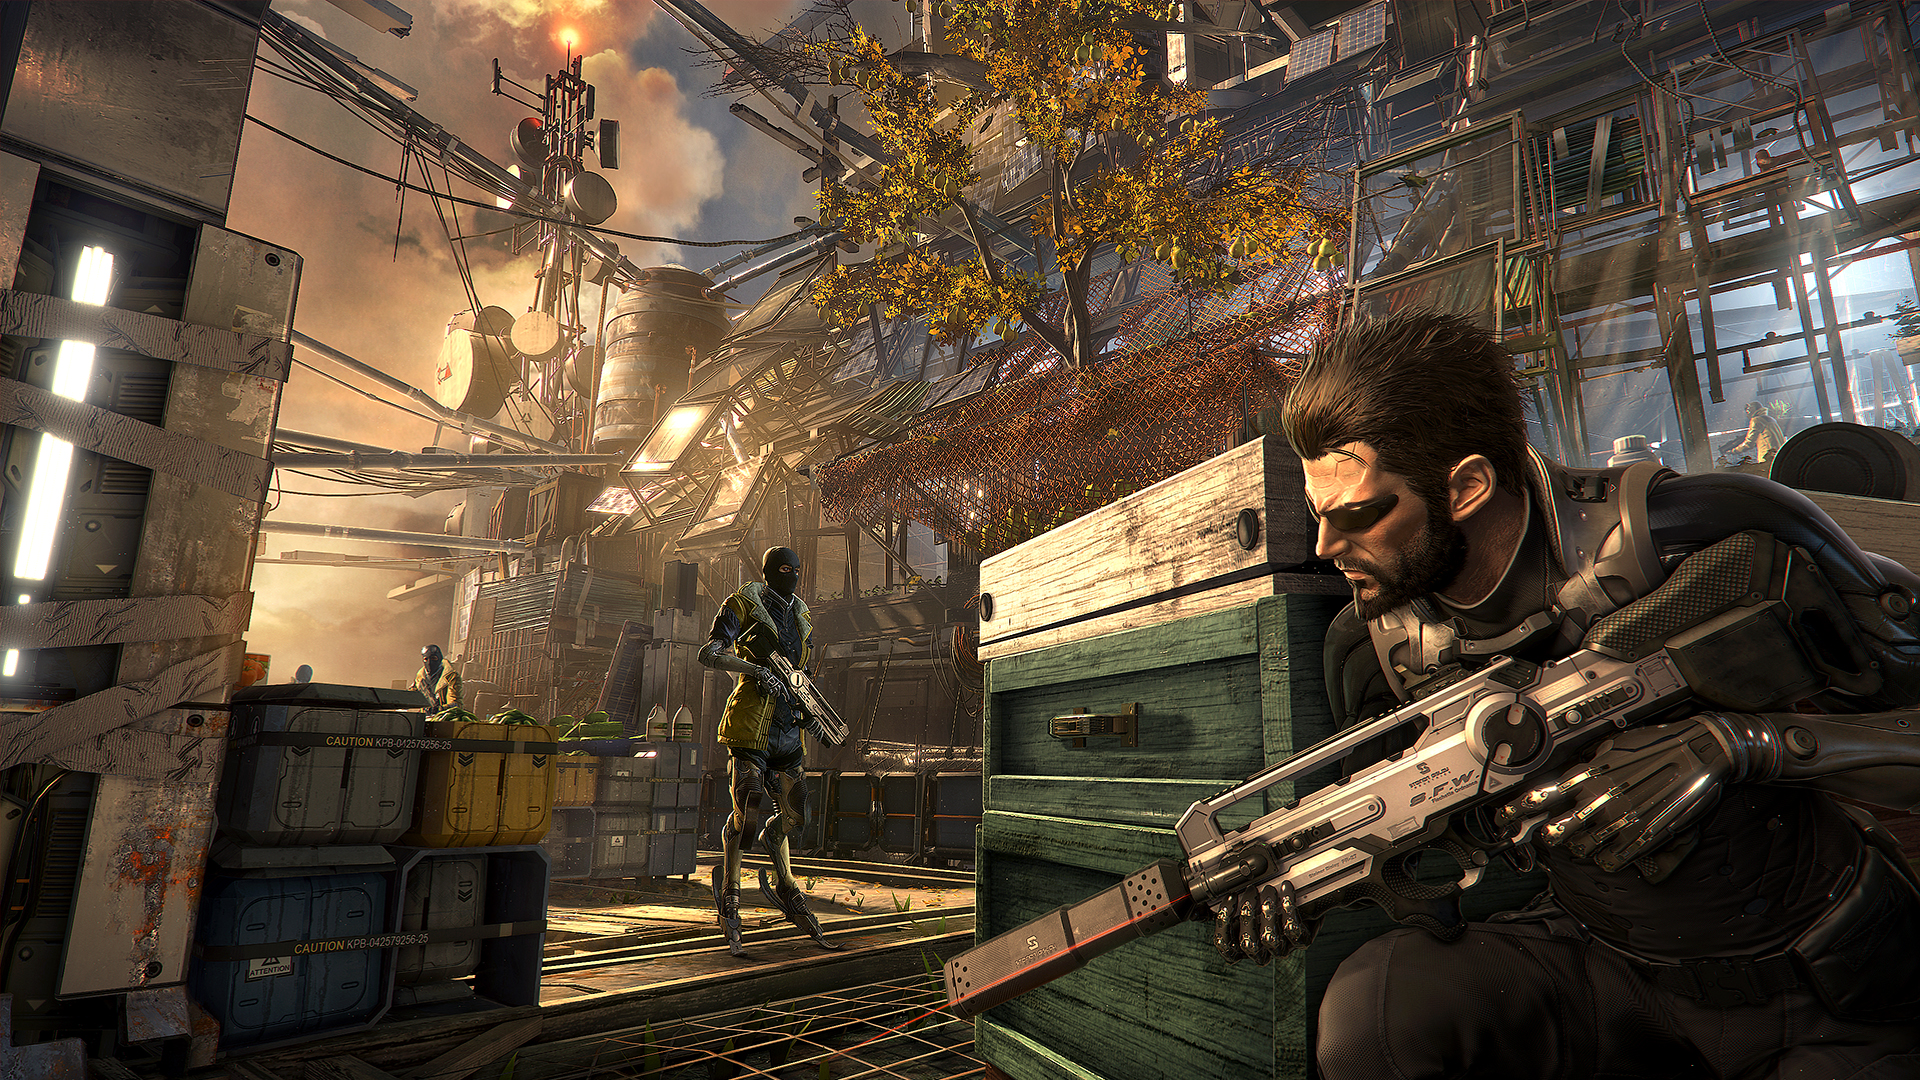 The game Deus Ex: Mankind Divided picture